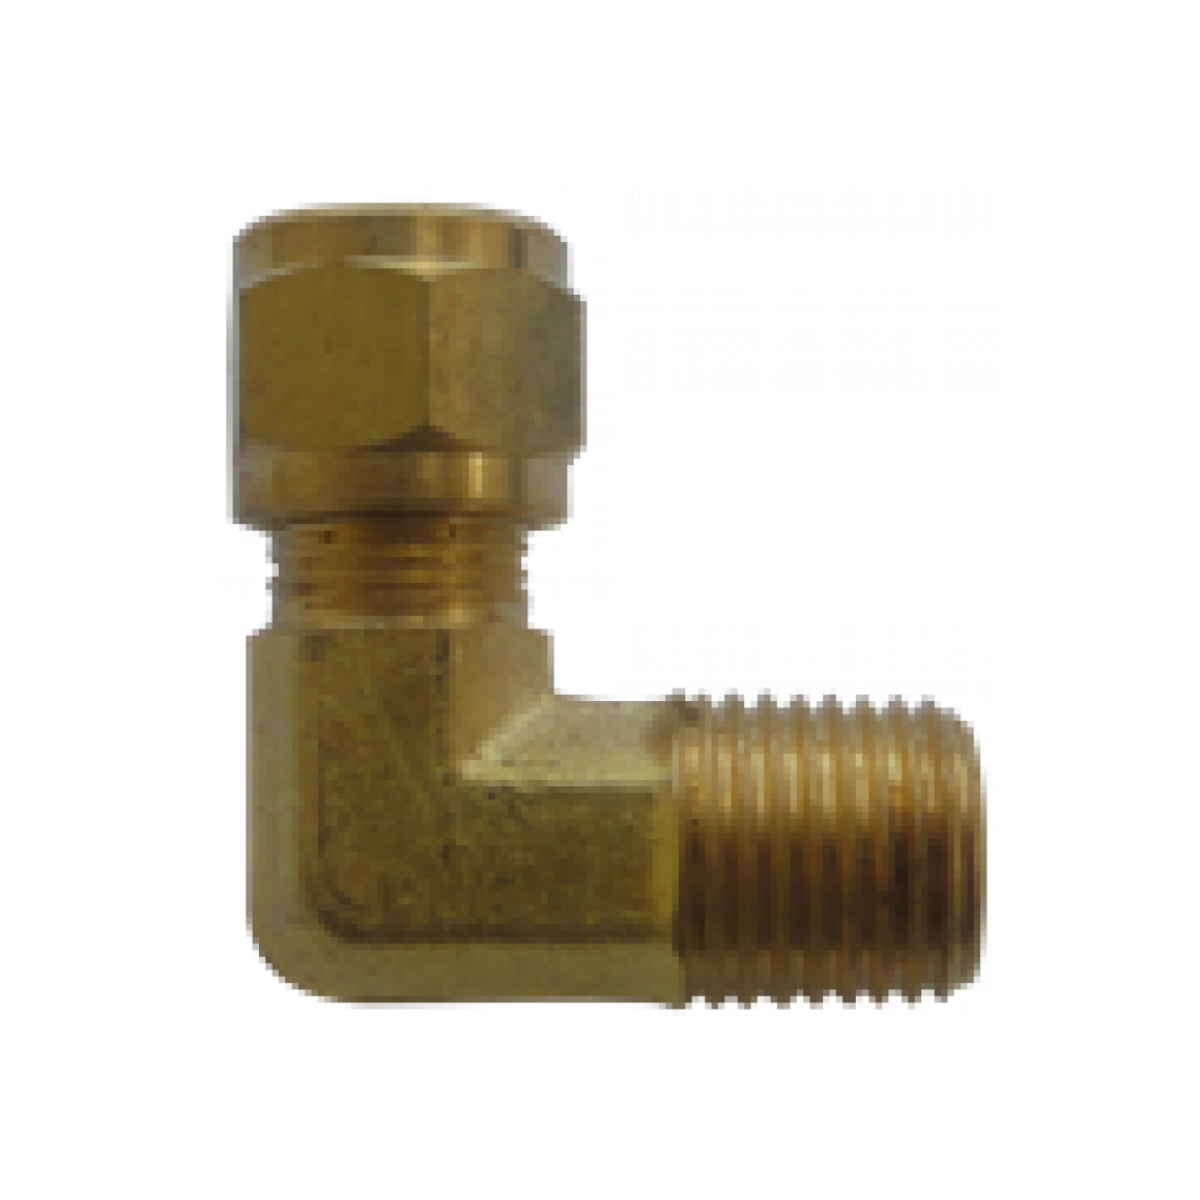 "Easylube Fitting 8mm PU x 1/8"" (M) 90 DEG ANGLE CONNECTOR"